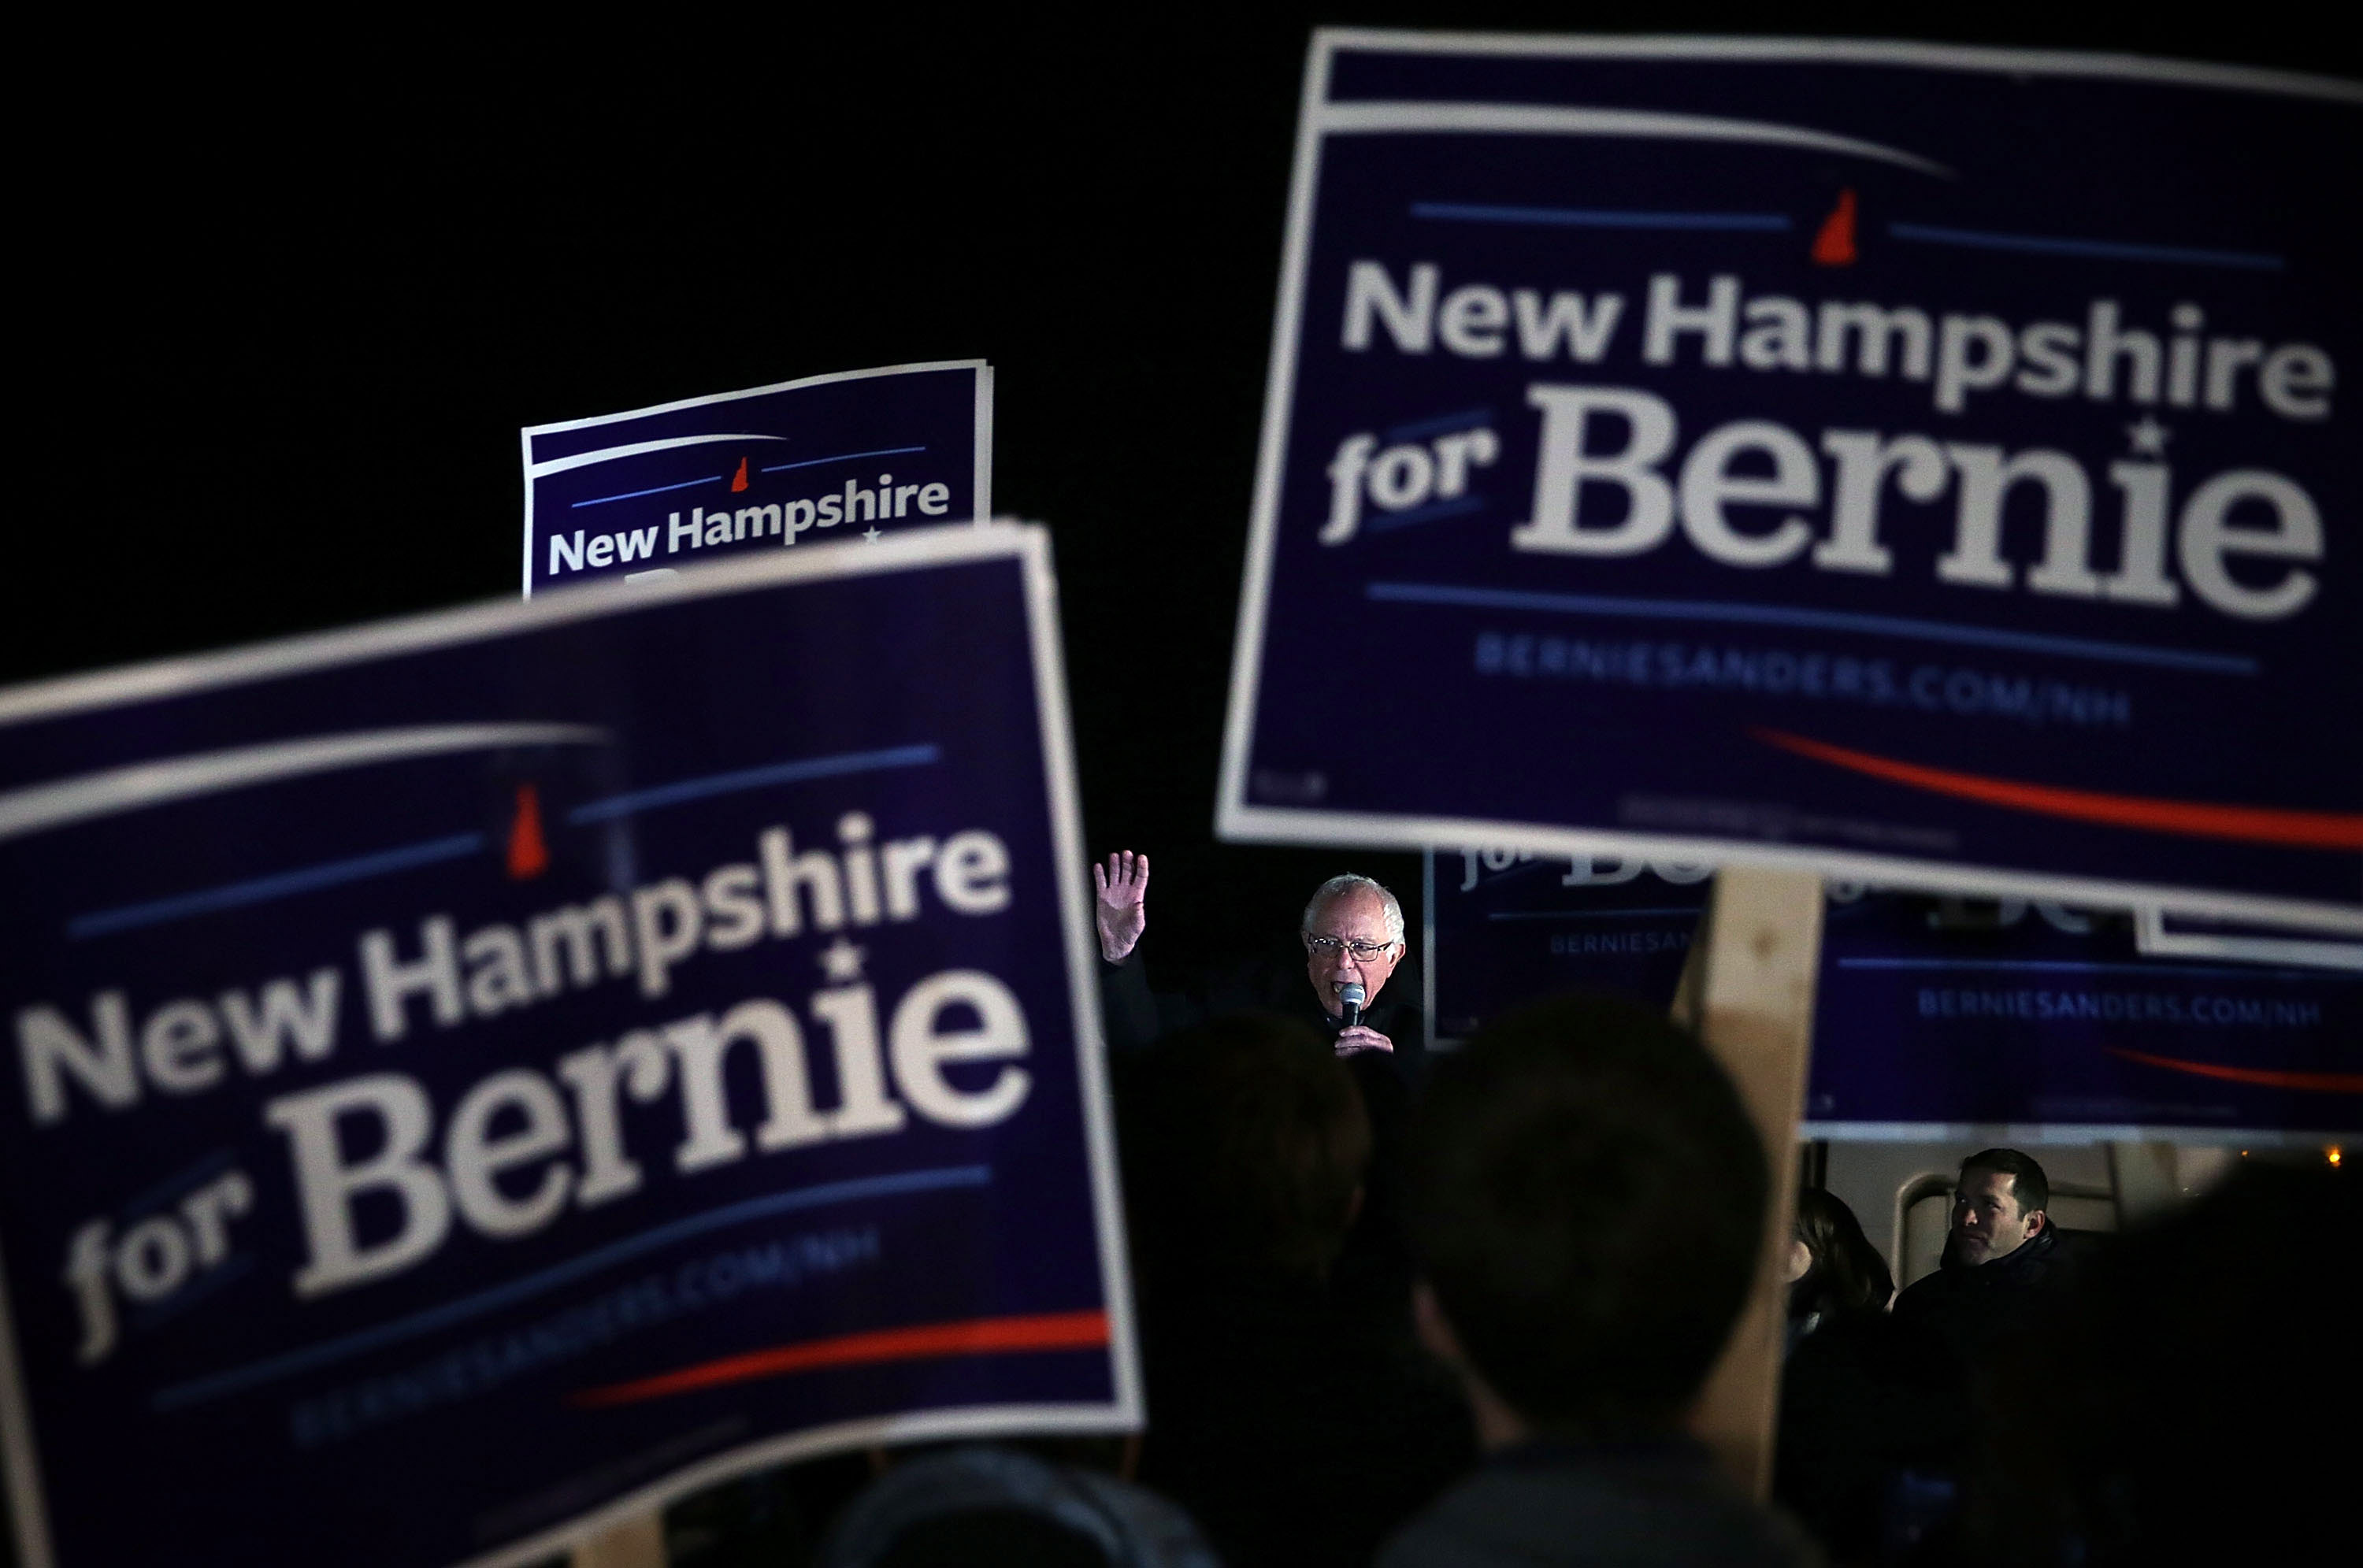 Bernie Sanders speaks to supporters on Feb. 2, 2016 in Concord, New Hampshire.